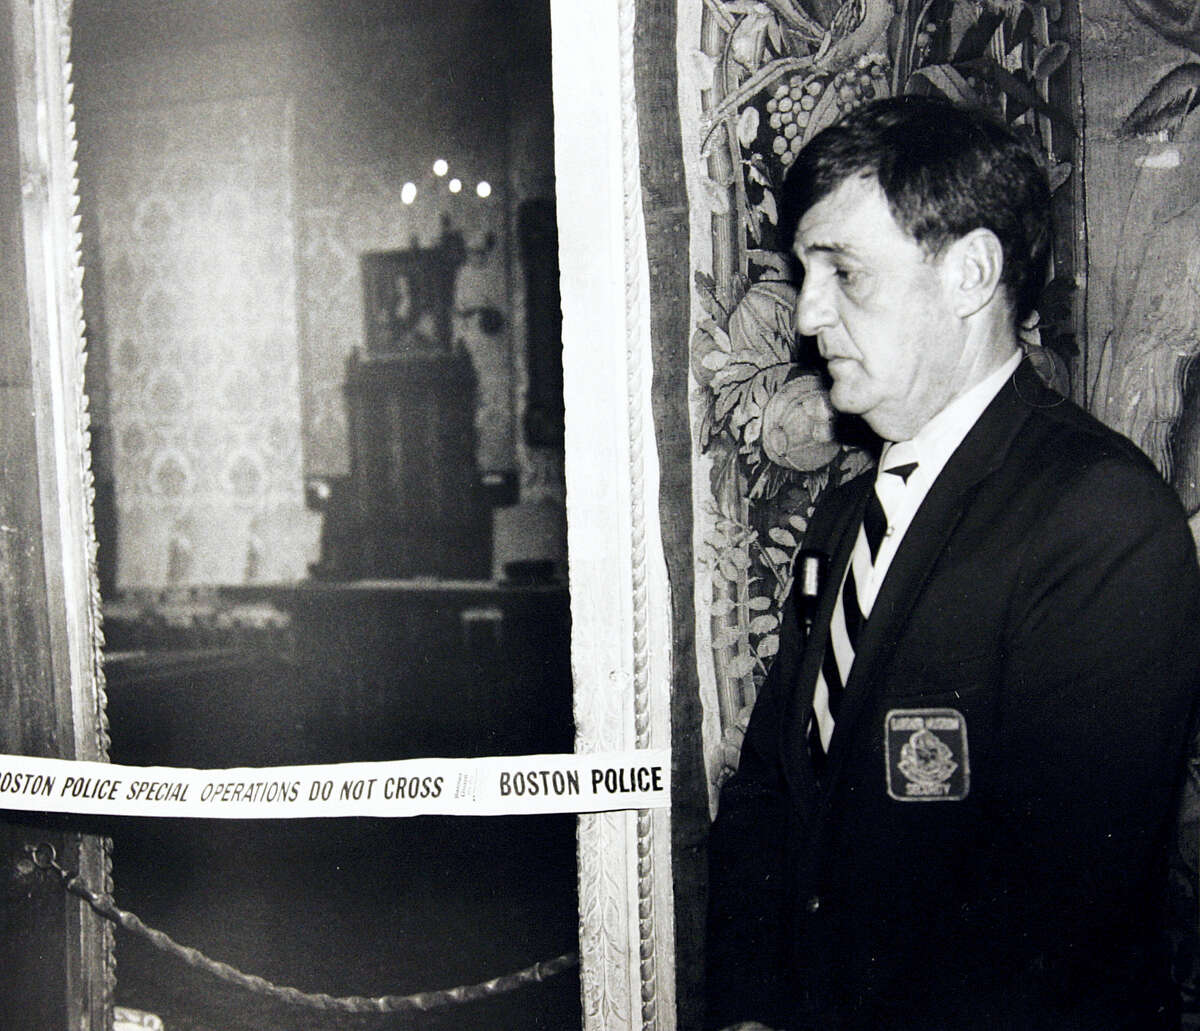 """In this March 21, 1990, file photo, a security guard stands outside the Dutch Room of the Isabella Stewart Gardner Museum in Boston, where robbers stole more than a dozen works of art by Rembrandt, Vermeer, Degas, Manet and others, in an early morning robbery March 18, 1990. A Dutch sleuth has his sights set on what he calls the """"Holy Grail"""" of stolen art: A collection worth $500 million snatched in 1990 is the largest art heist in U.S. history from Boston's Isabella Stewart Gardner Museum."""